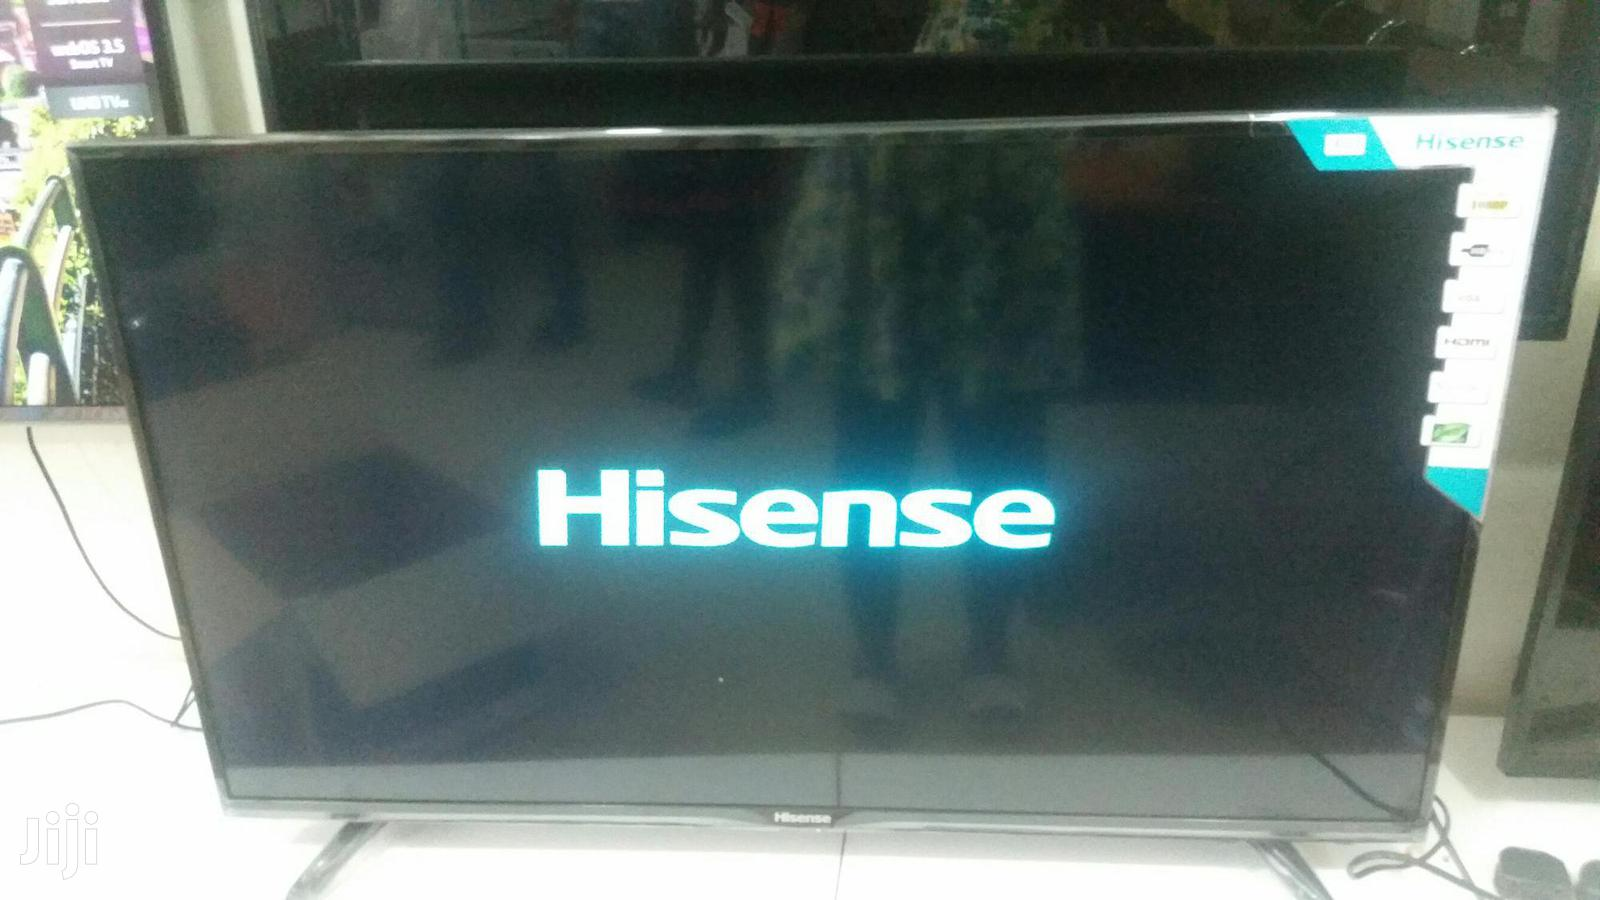 40 Inches Led Hisense TV Flatscreen